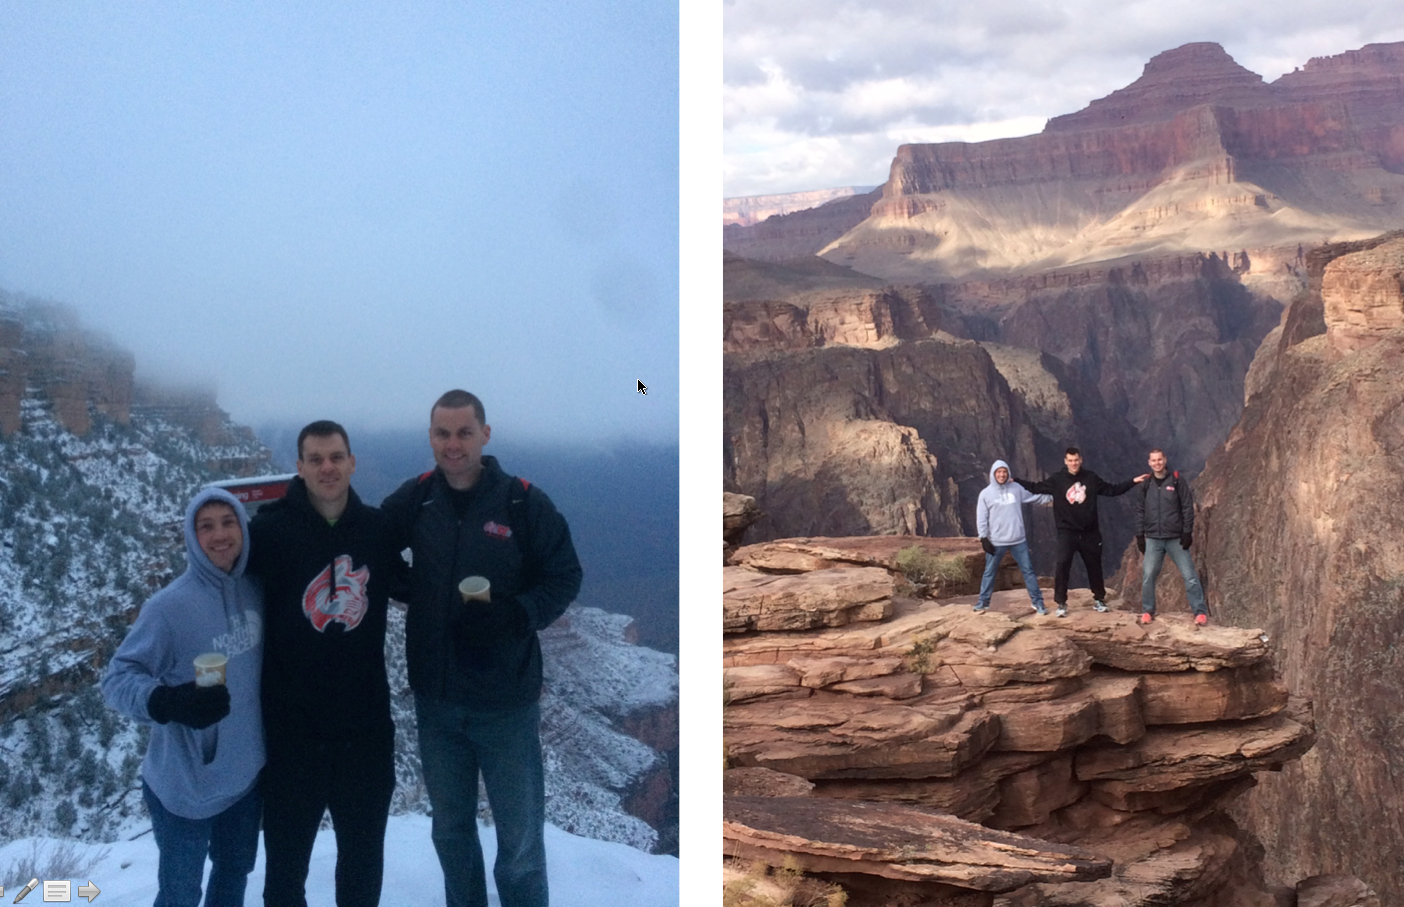 IWU Coaches at the South Rim of the Grand Canyon                               IWU Coaches at Plateau Point overlooking the Colorado River